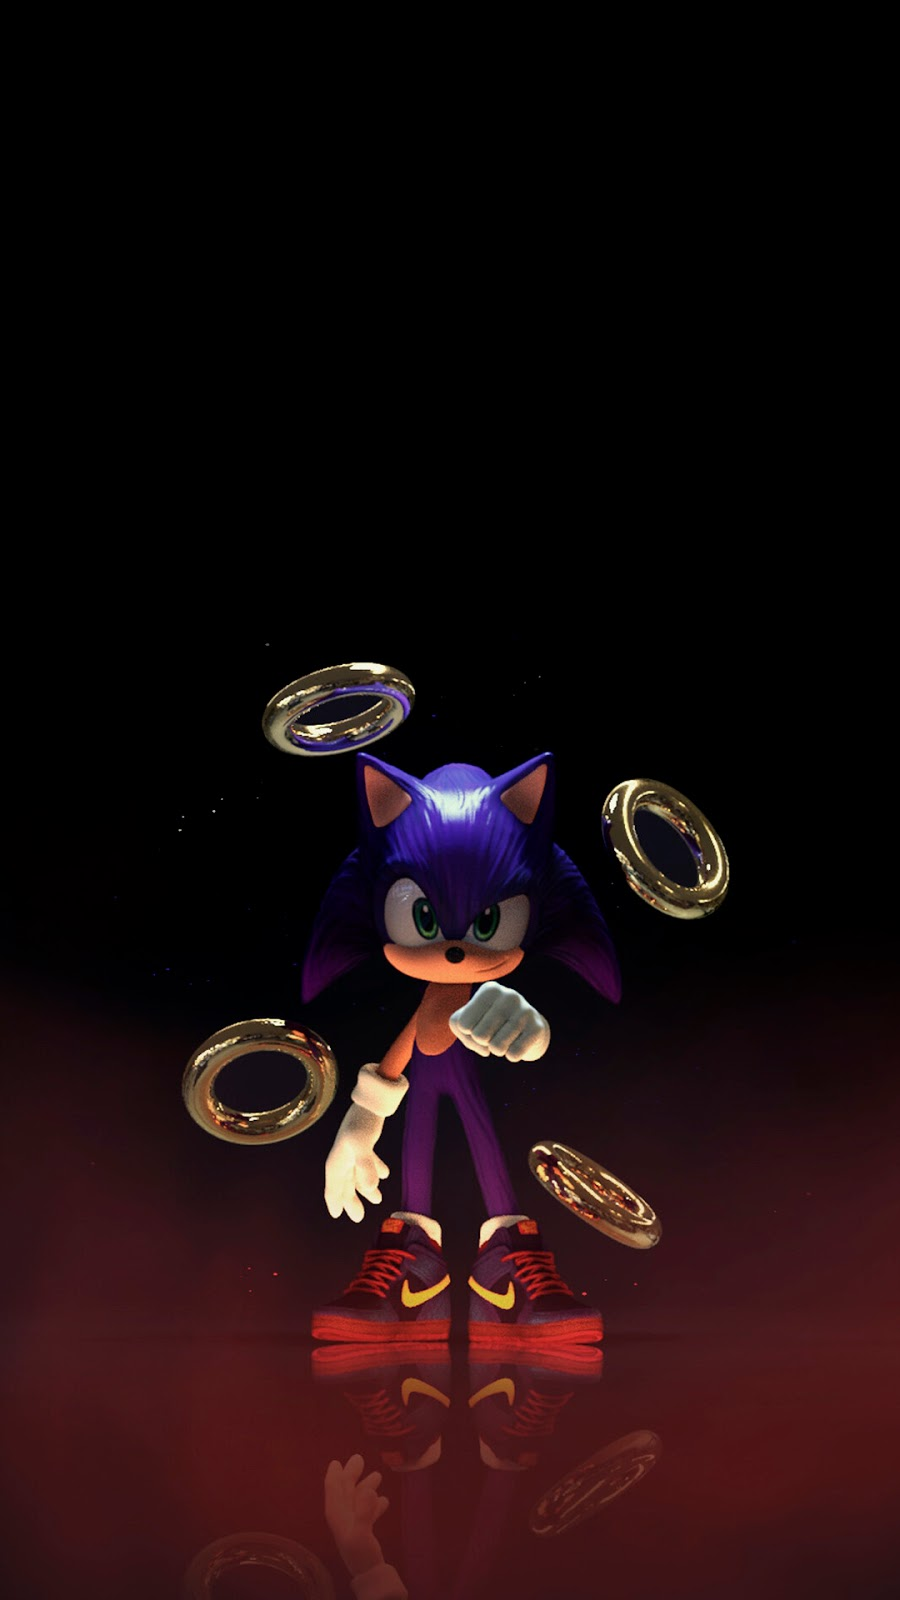 sonic-iphone-wallpaper-hd